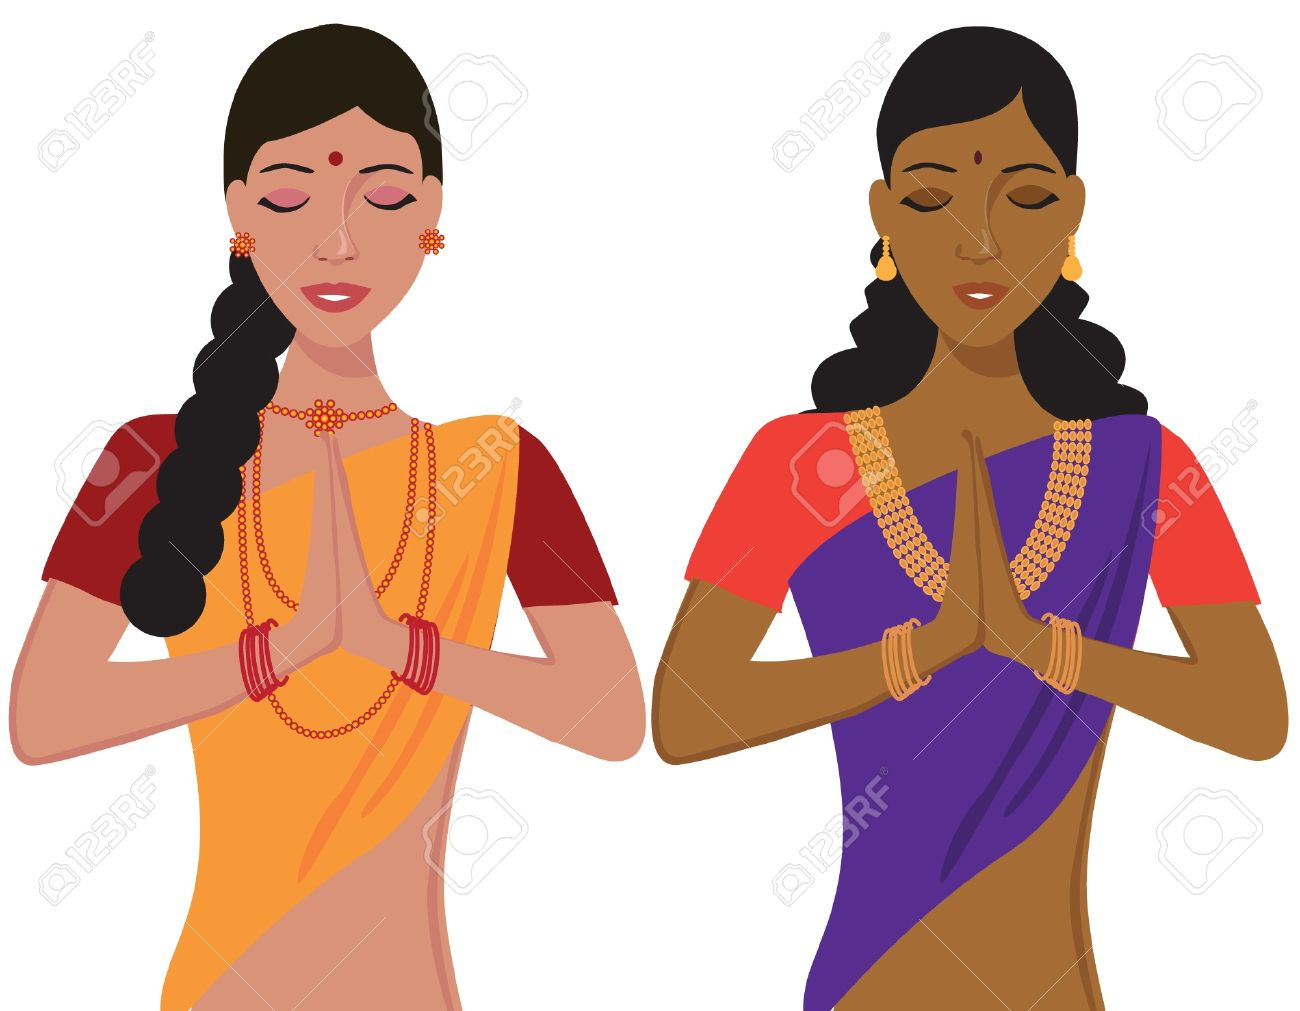 Young Indian Girl Greeting Namaste In Traditional Clothing Royalty